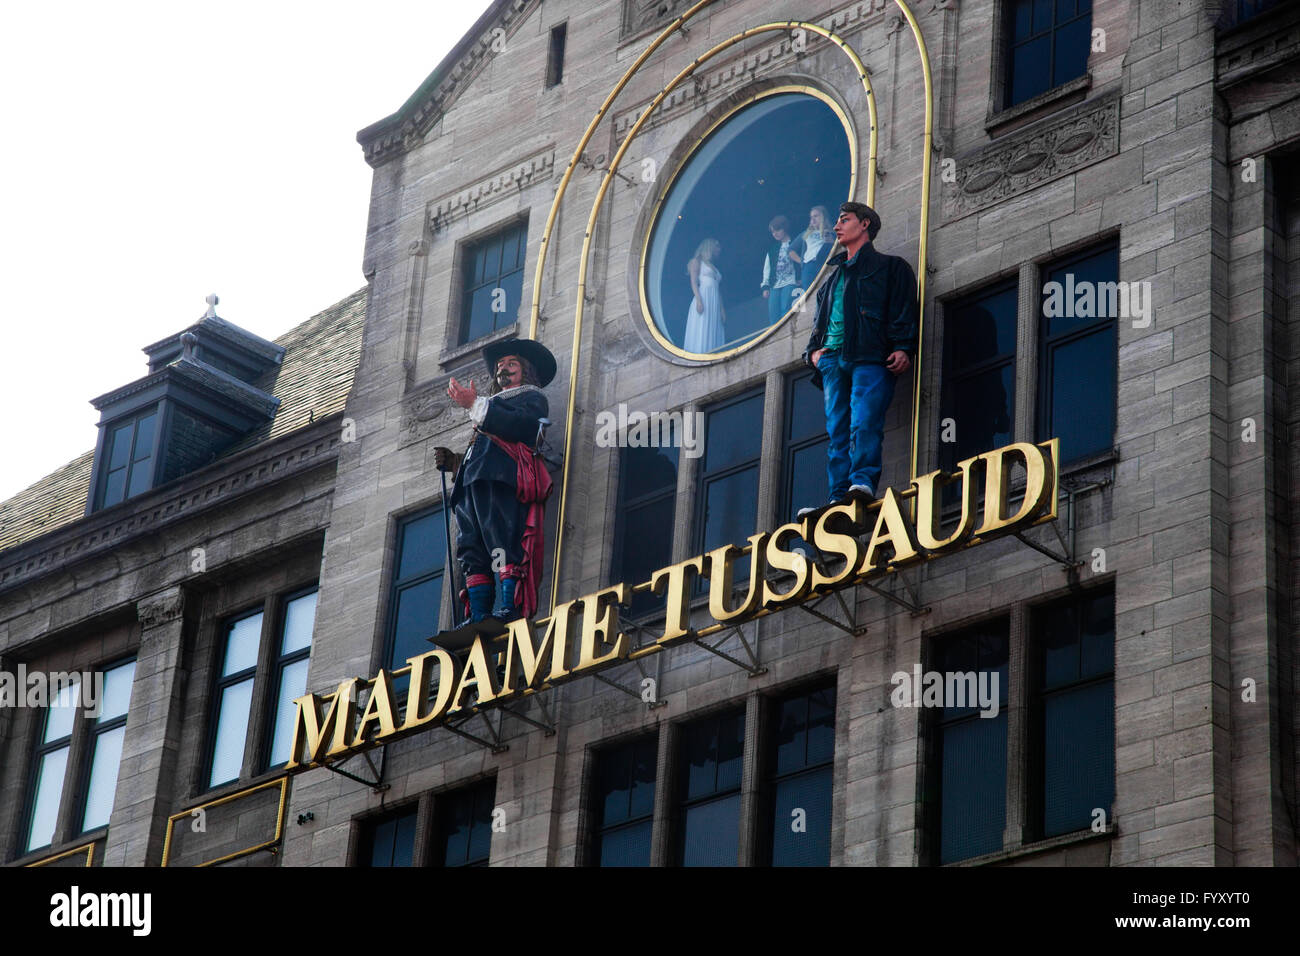 Madame Tussaud musem in Amsterdam - Stock Image